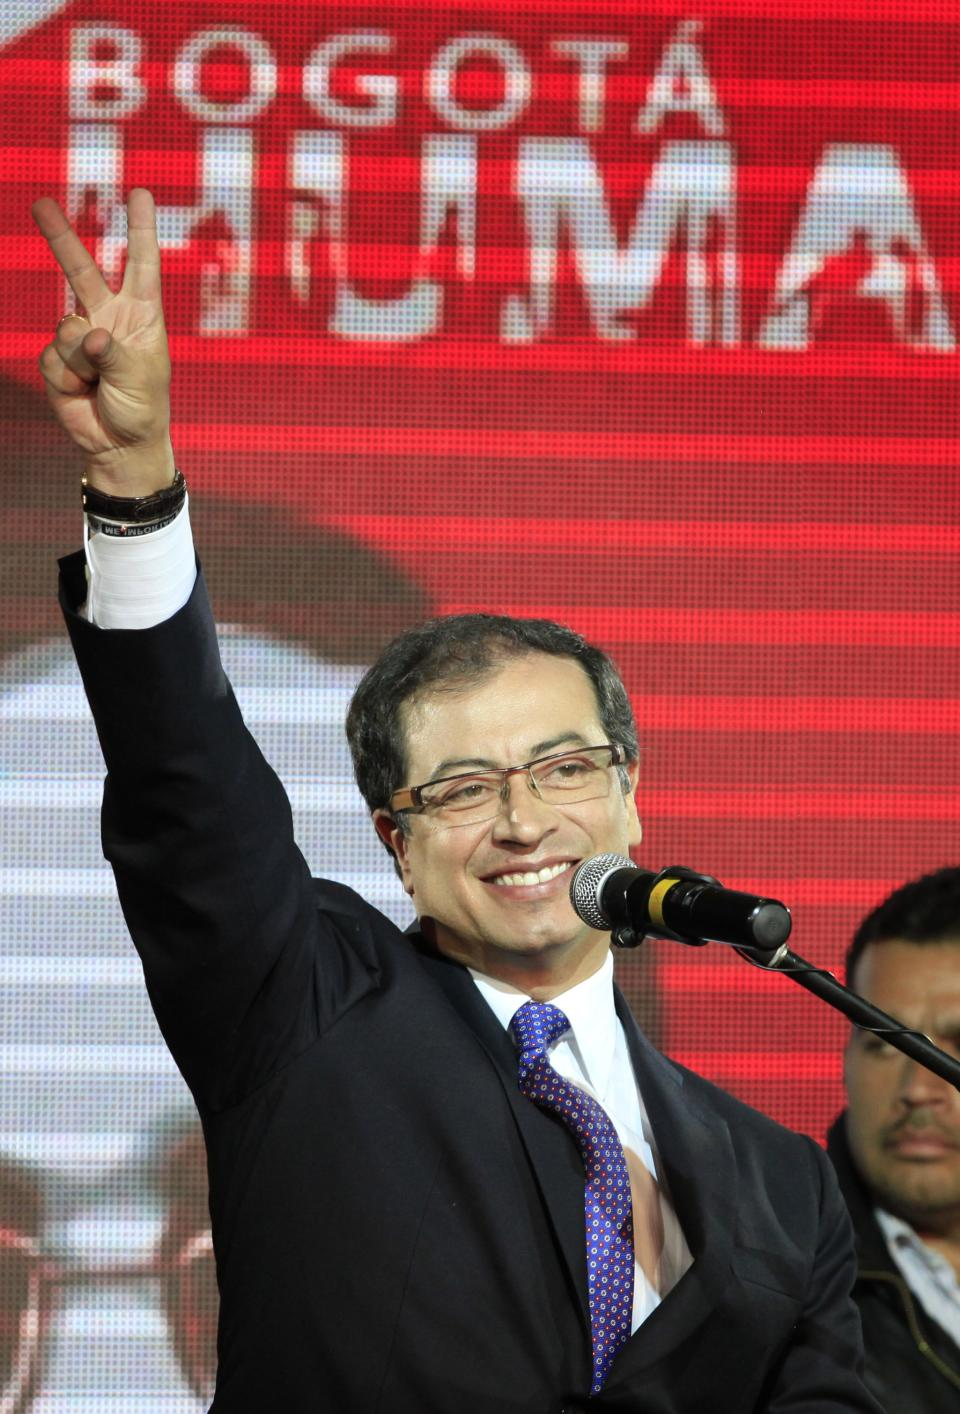 Gustavo Petro gestures to supporters as he celebrates winning Bogota's mayoral race in Bogota, Colombia, Sunday Oct. 30, 2011. Voters on Sunday elected Gustavo Petro as mayor of Bogota, the first time an ex-guerrilla has won Colombia's second most important elected office.  (AP Photo/Fernando Vergara)